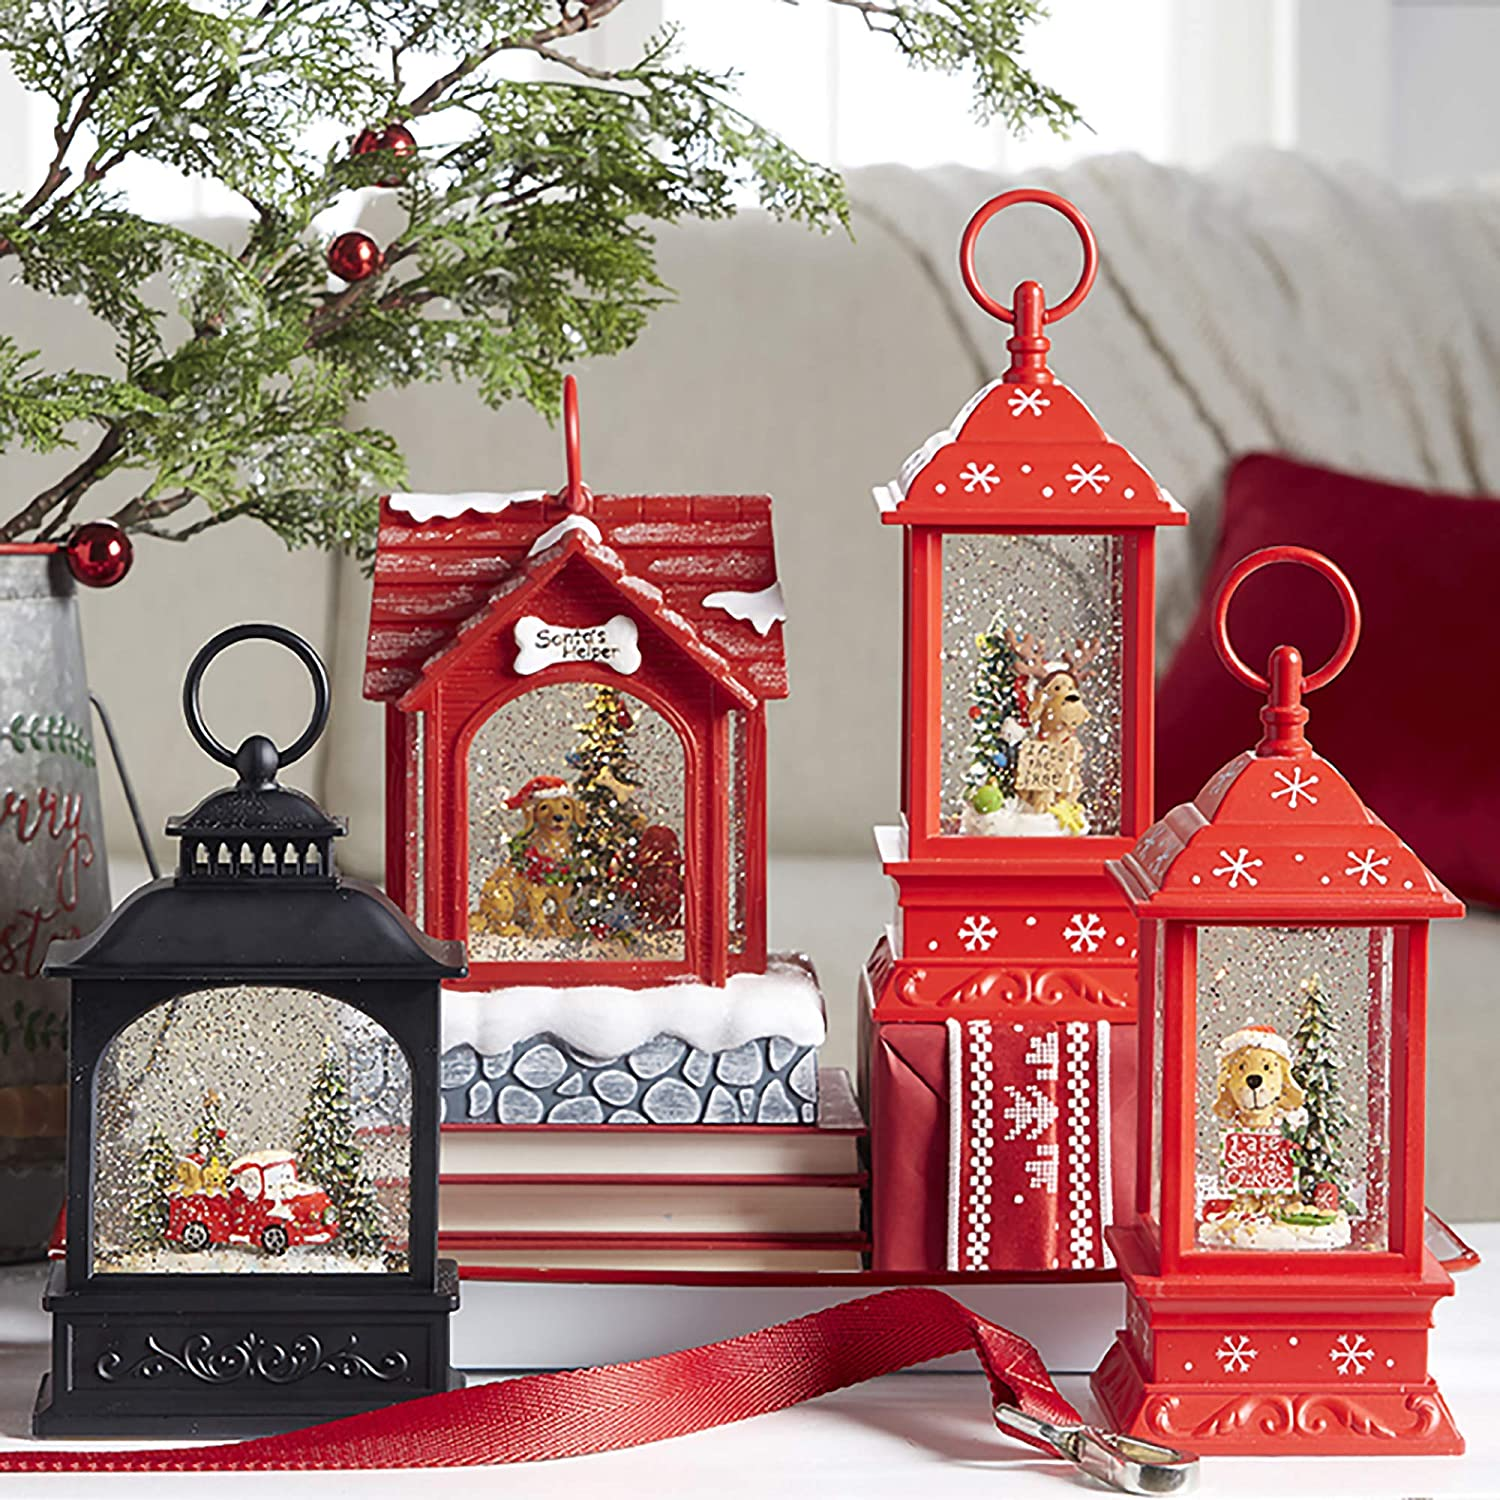 Vita Domi Dogs in Red Truck Scene Lighted Water Lantern Christmas Snow Globe with Swirling Glitter